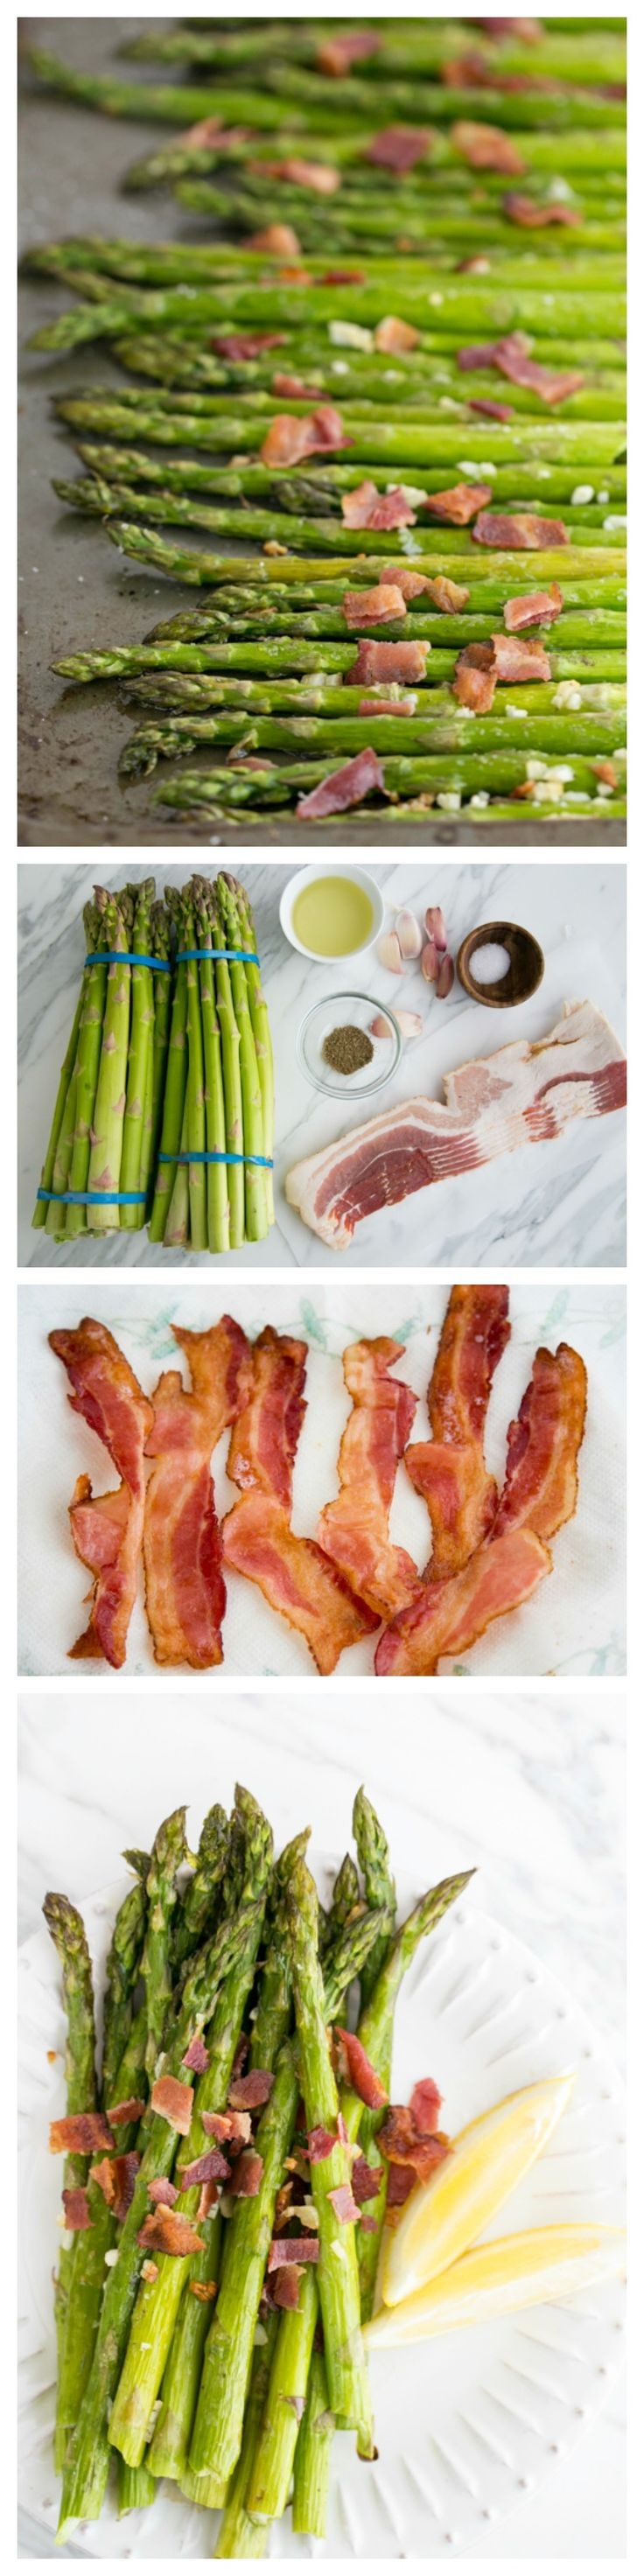 Easy Garlicky Roasted Asparagus with Bacon @natashaskitchen